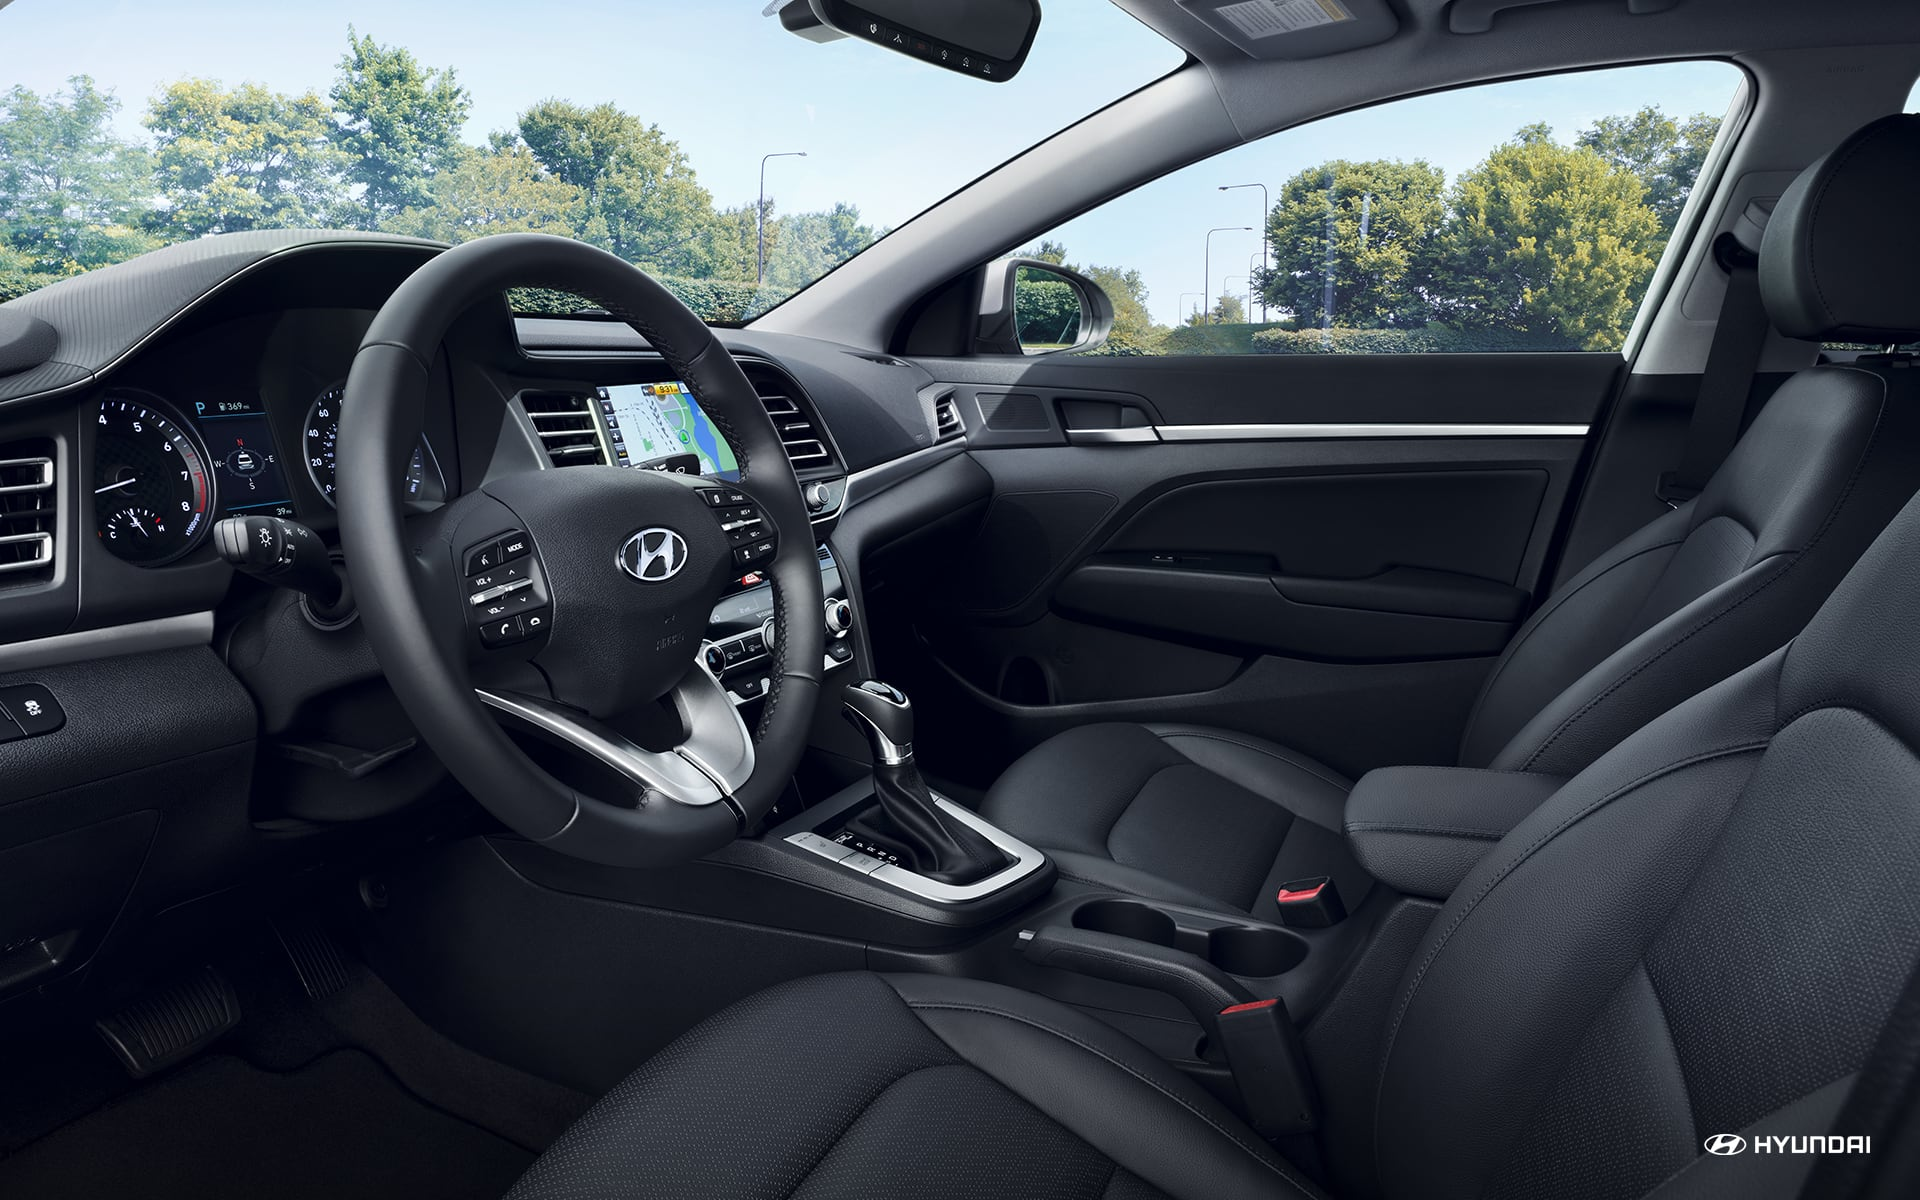 Front Row of the 2019 Hyundai Elantra